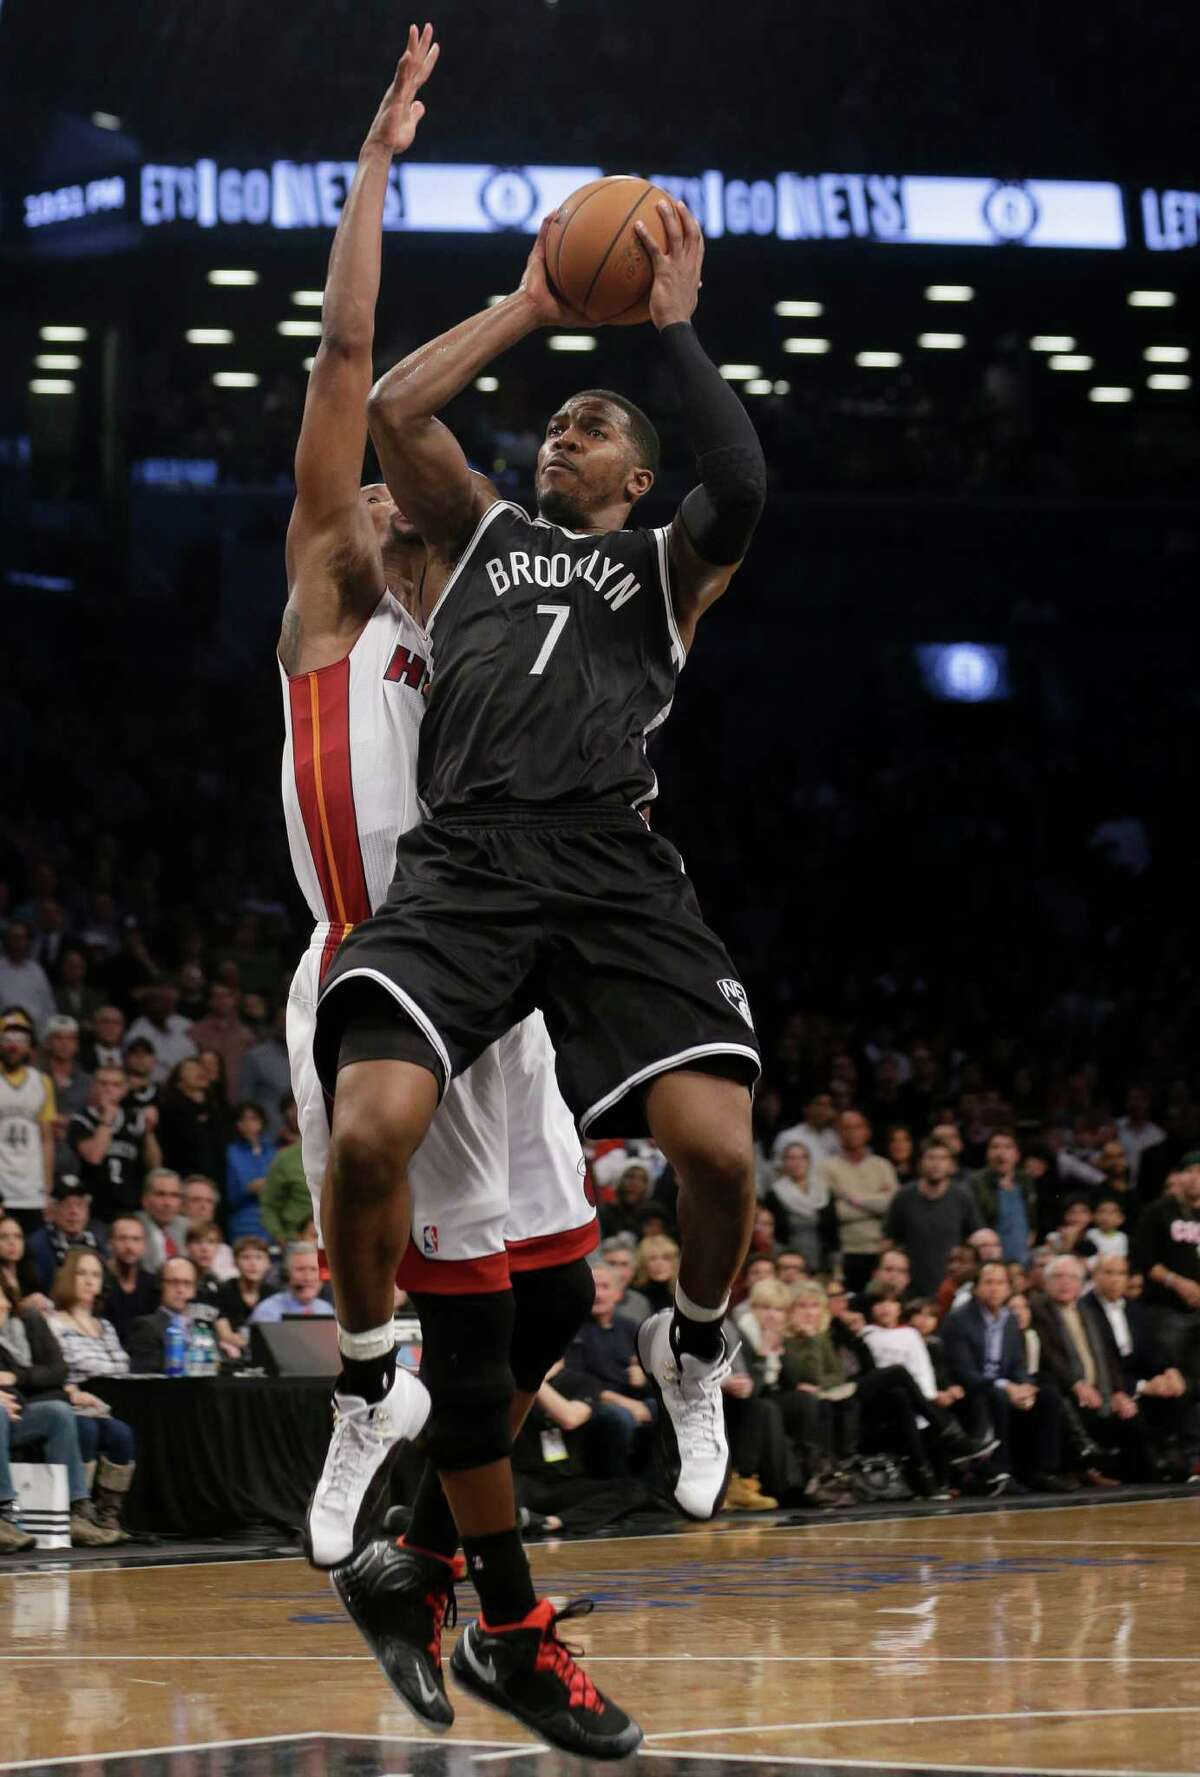 Brooklyn Nets' Joe Johnson (7) shoots over Miami Heat's Chris Bosh (1) during the first overtime period of an NBA basketball game on Friday, Jan. 10, 2014, in New York. The Nets won the game 104-95. (AP Photo/Frank Franklin II) ORG XMIT: NYFF114